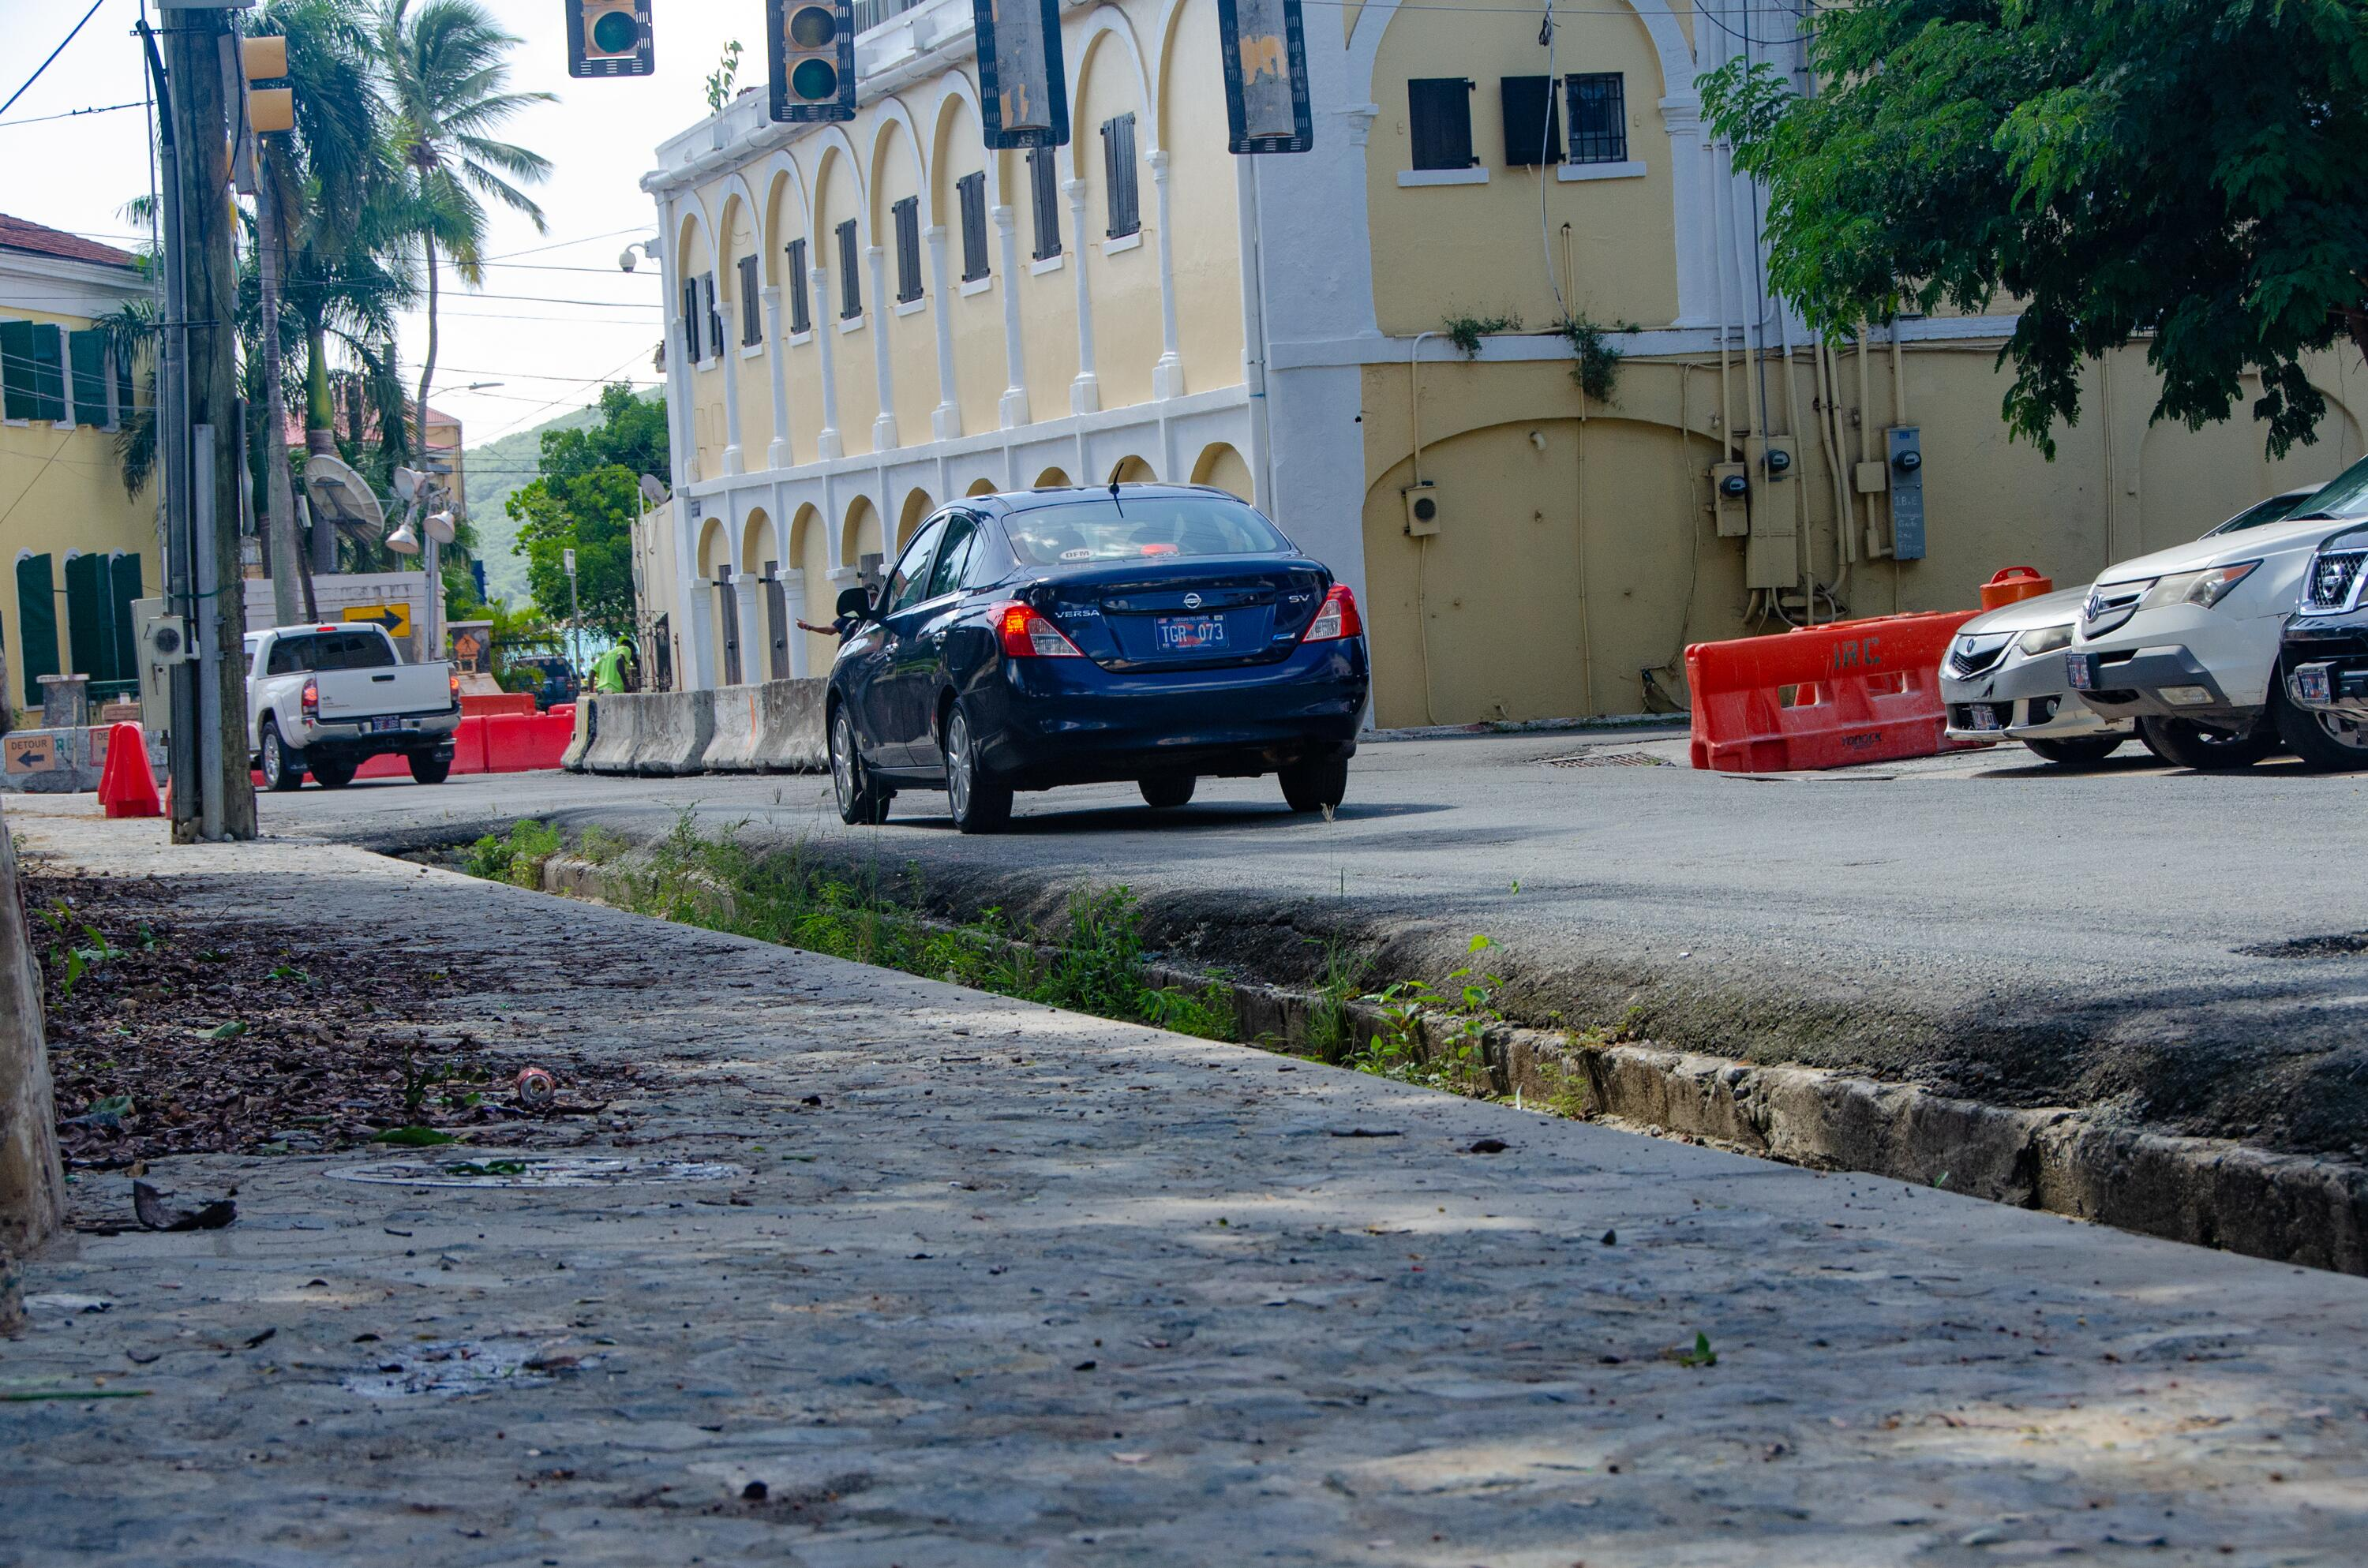 FEMA's Public Assistance Program is supporting the V.I. Waste Management Authority's plans for sewer line repairs for the Garden Street gut in Charlotte Amalie on St. Thomas. Hurricanes Irma and Maria left Garden Street littered with debris in September 2017.